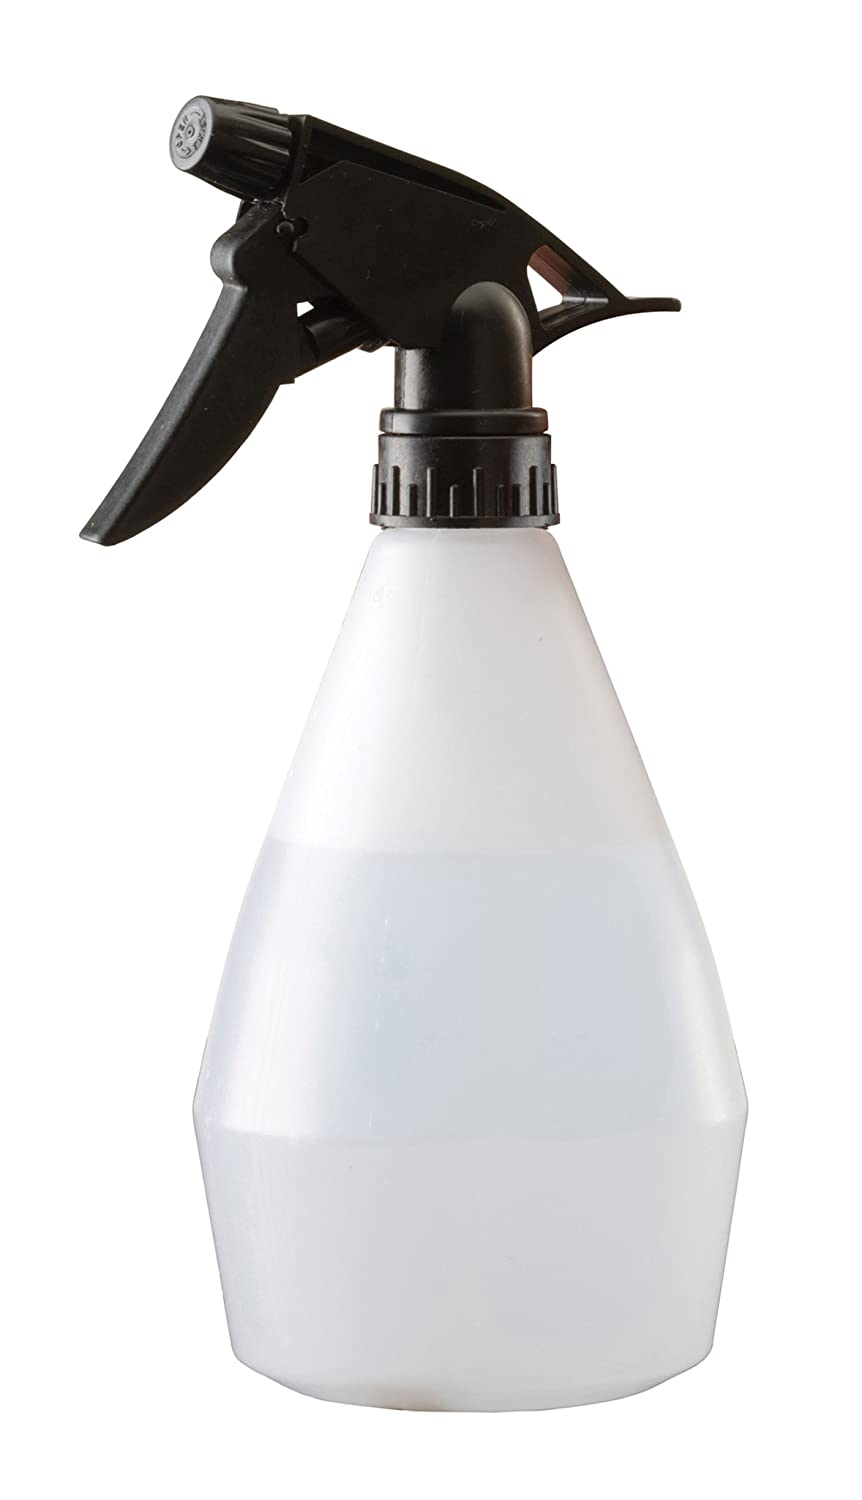 Exo Terra Mini Mister Spray Bottle, 16-Ounces PT2489